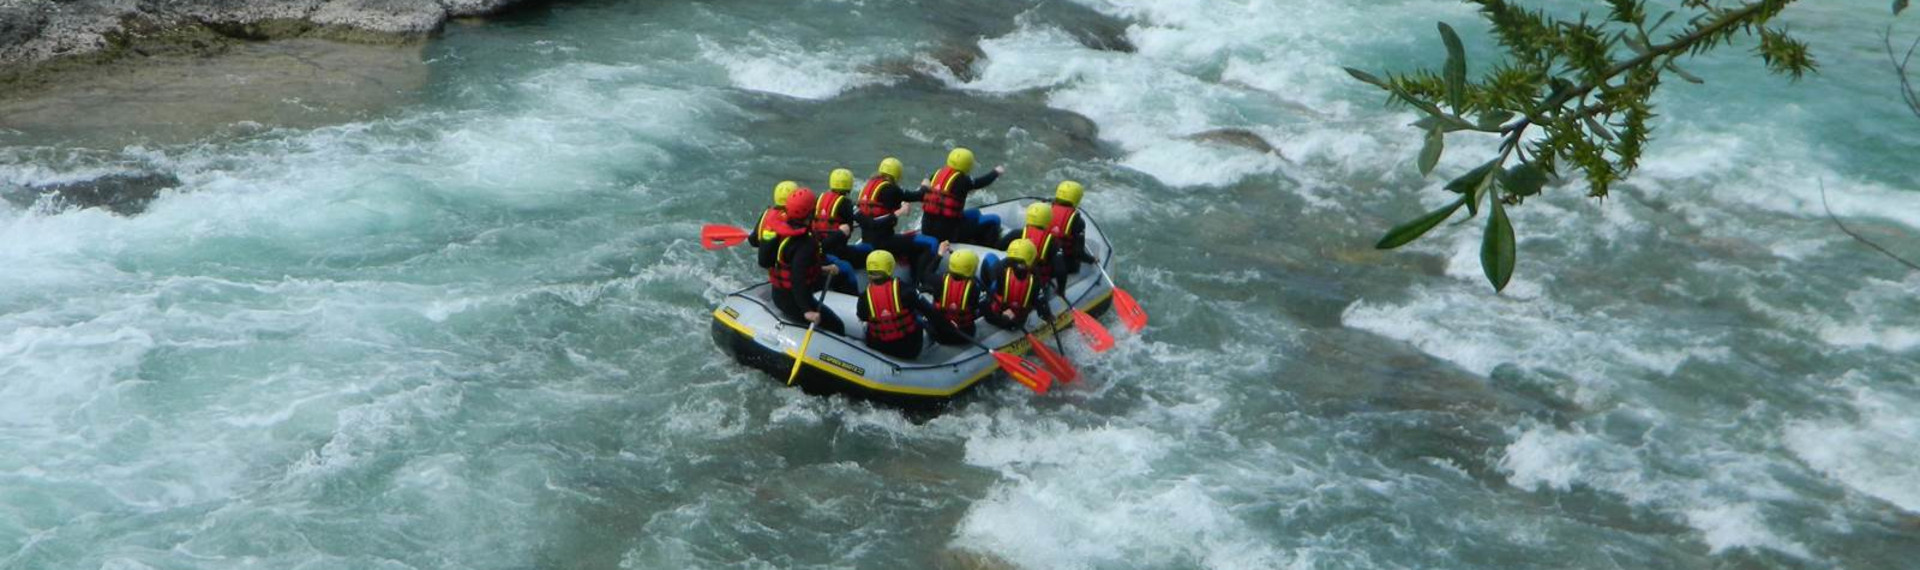 Munich White Water Rafting image